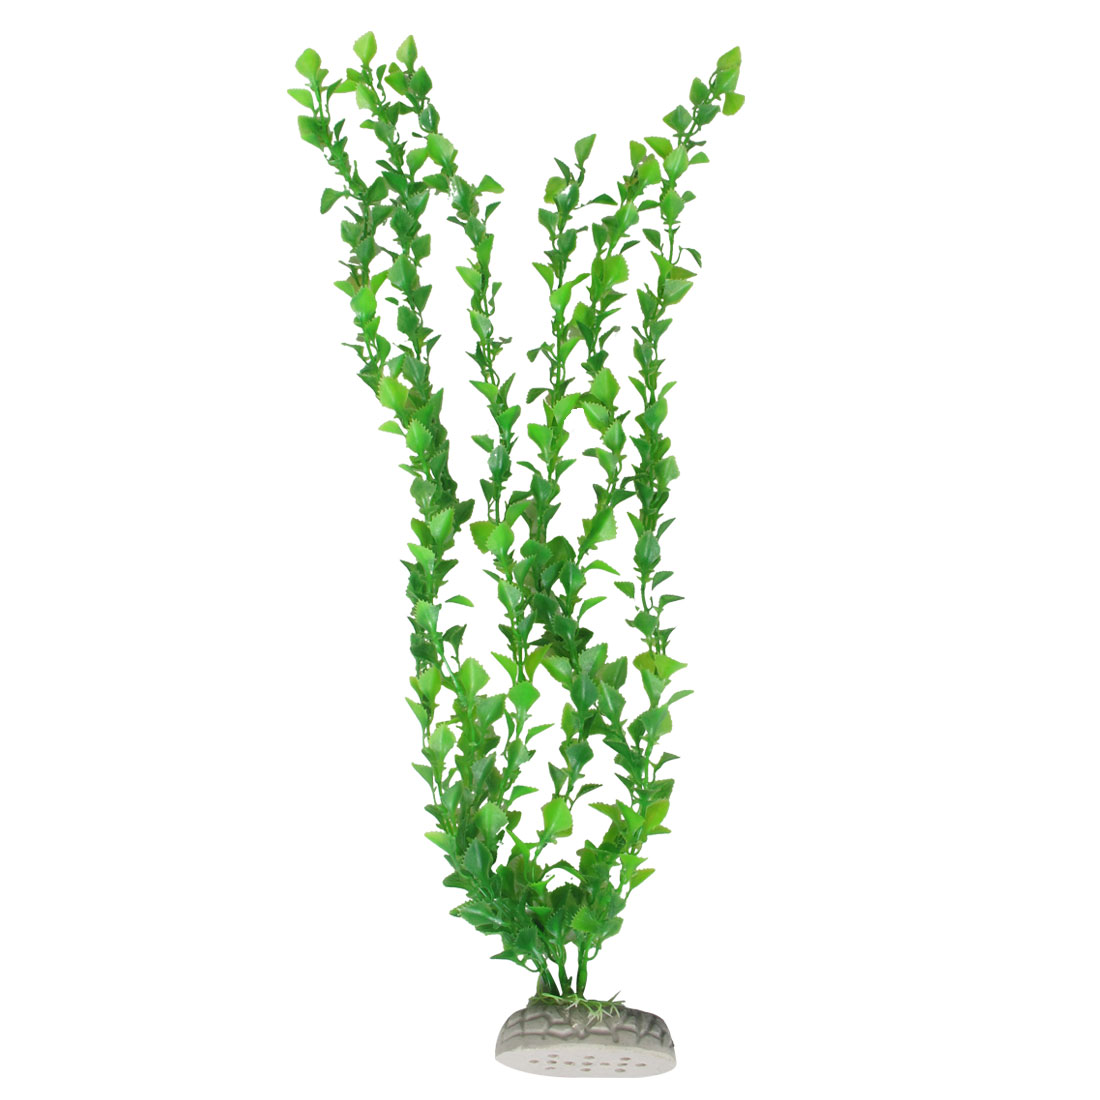 "Aquarium 22"" Height Green Plastic Plants Decor with Ceramic Base"